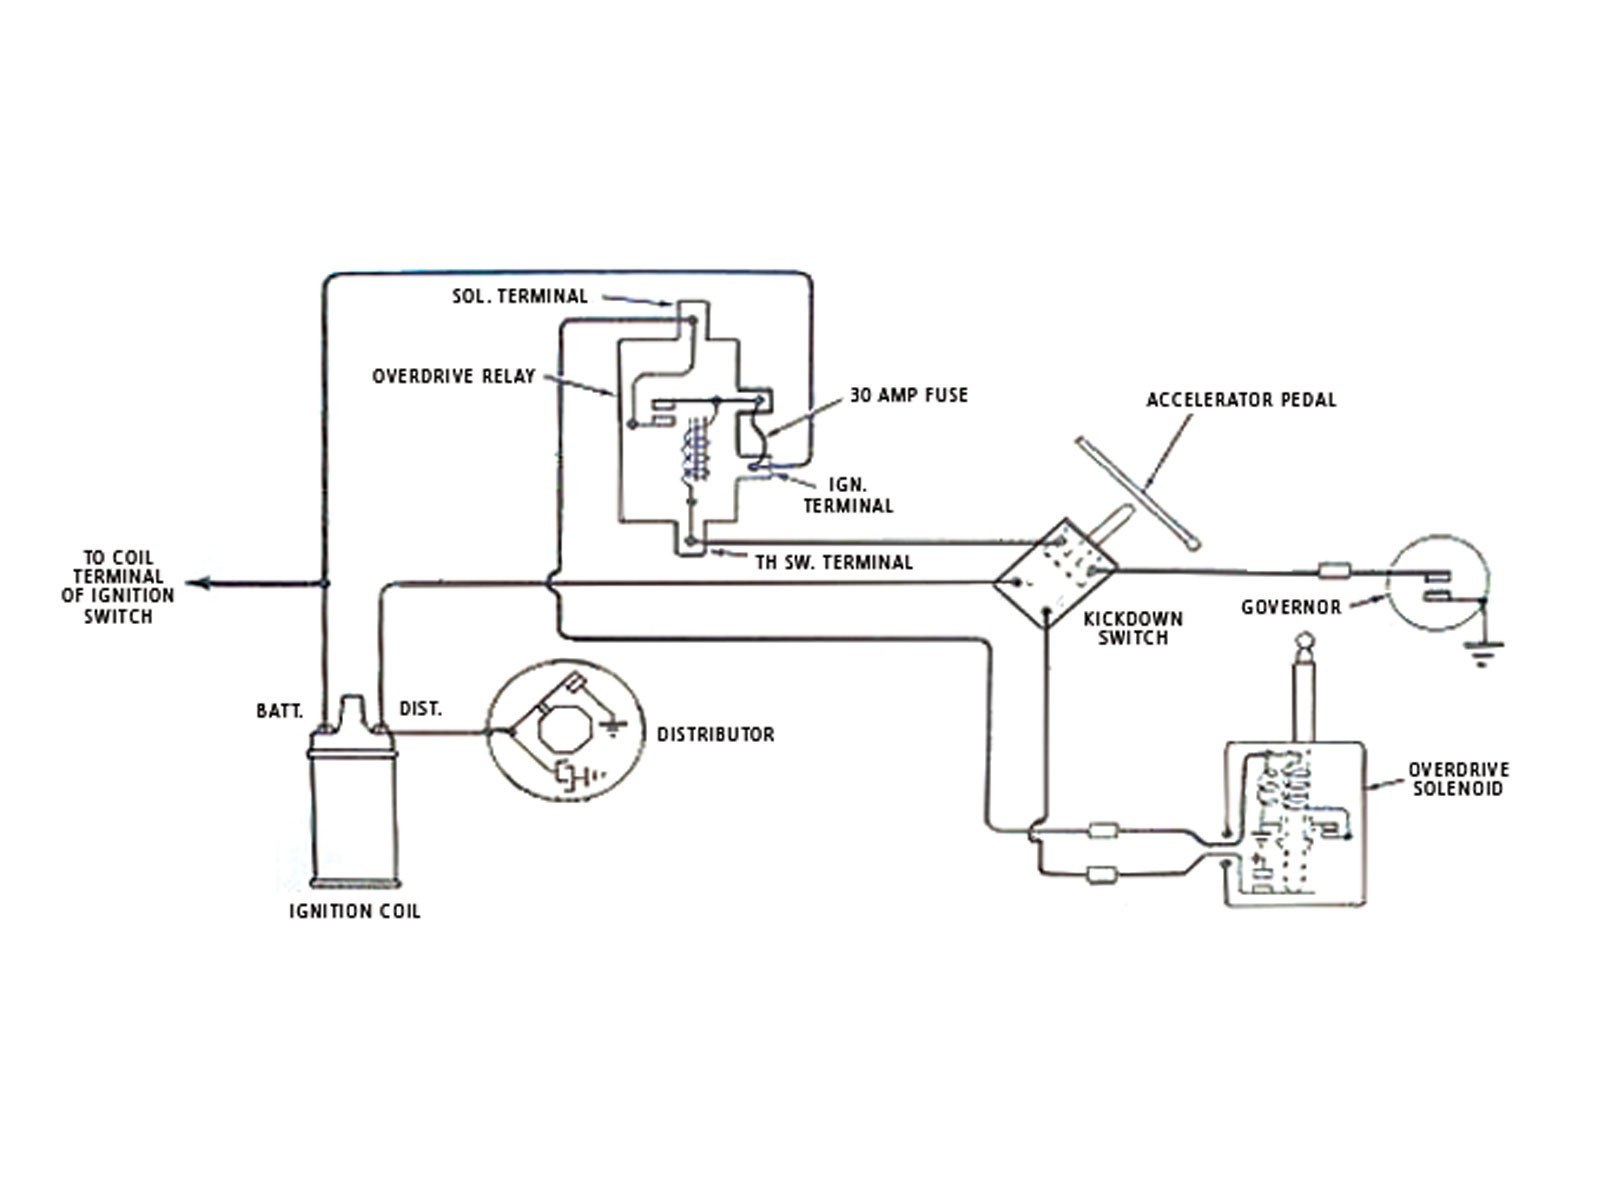 Wiring Diagram for Flasher Relay Wiring Diagram for 3 Pin Flasher Unit Reference New Wiring Diagram 3 Of Wiring Diagram for Flasher Relay